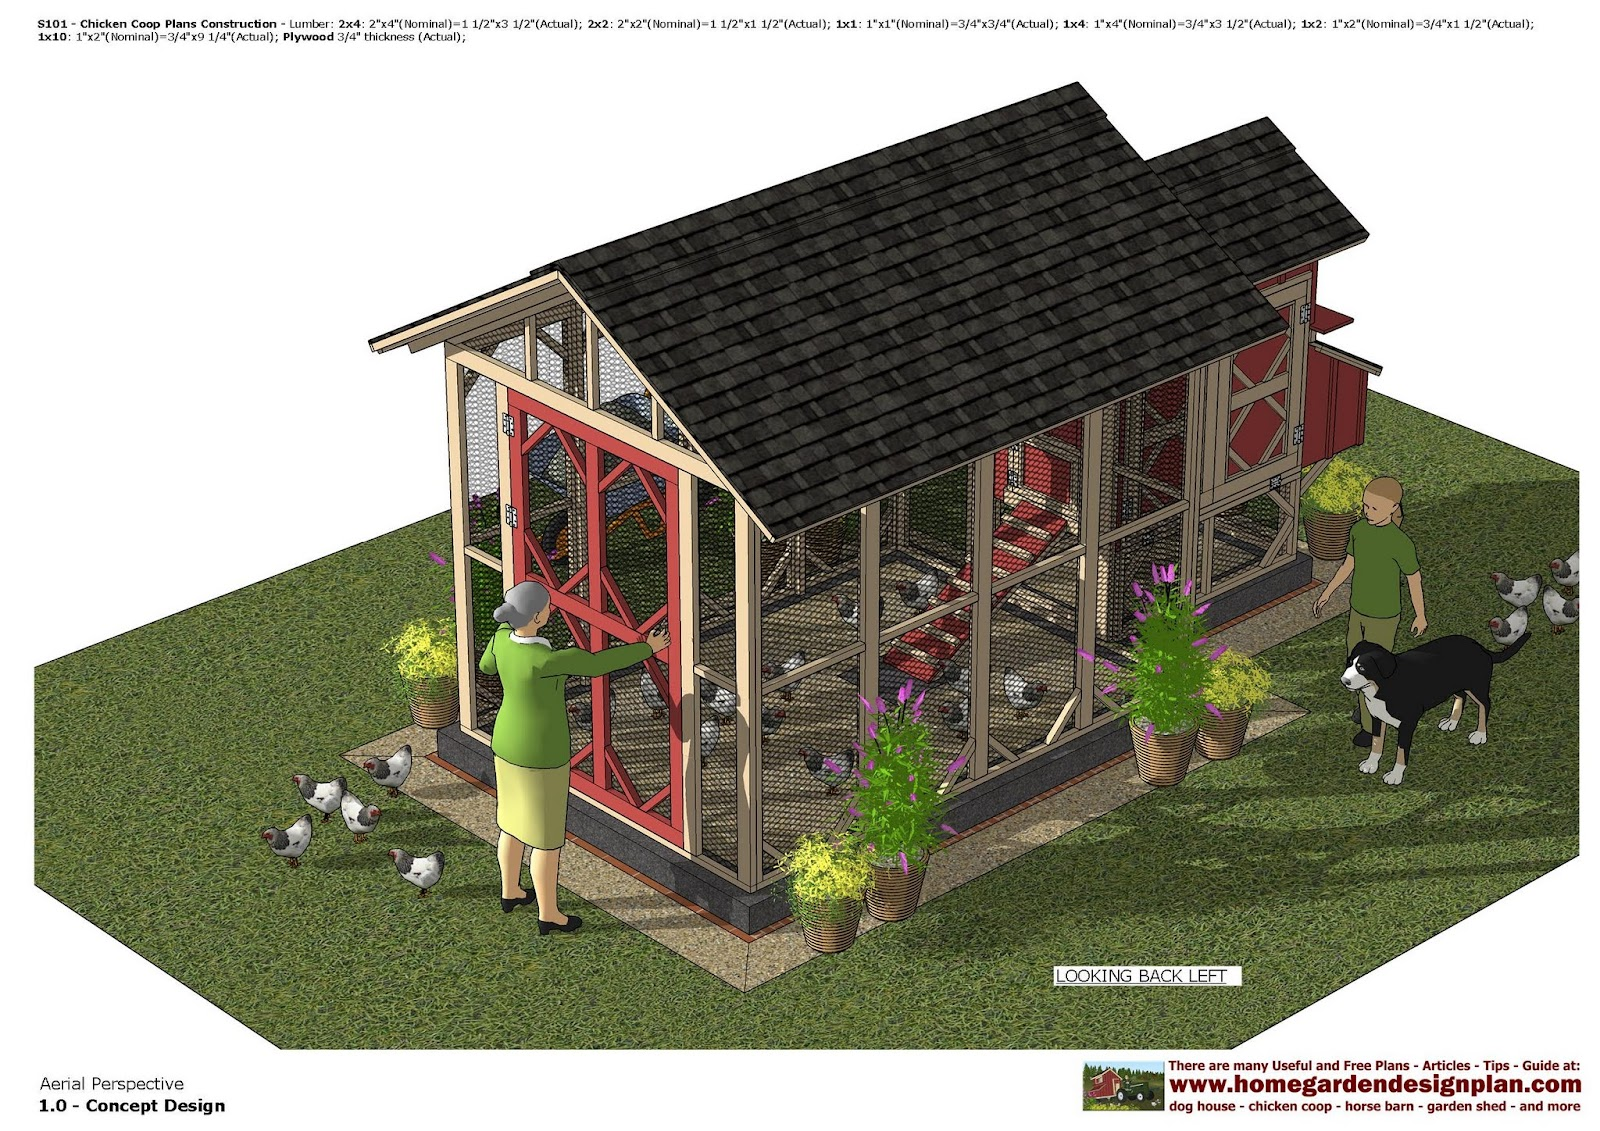 Home Garden Plans S101 Chicken Coop Plans Chicken